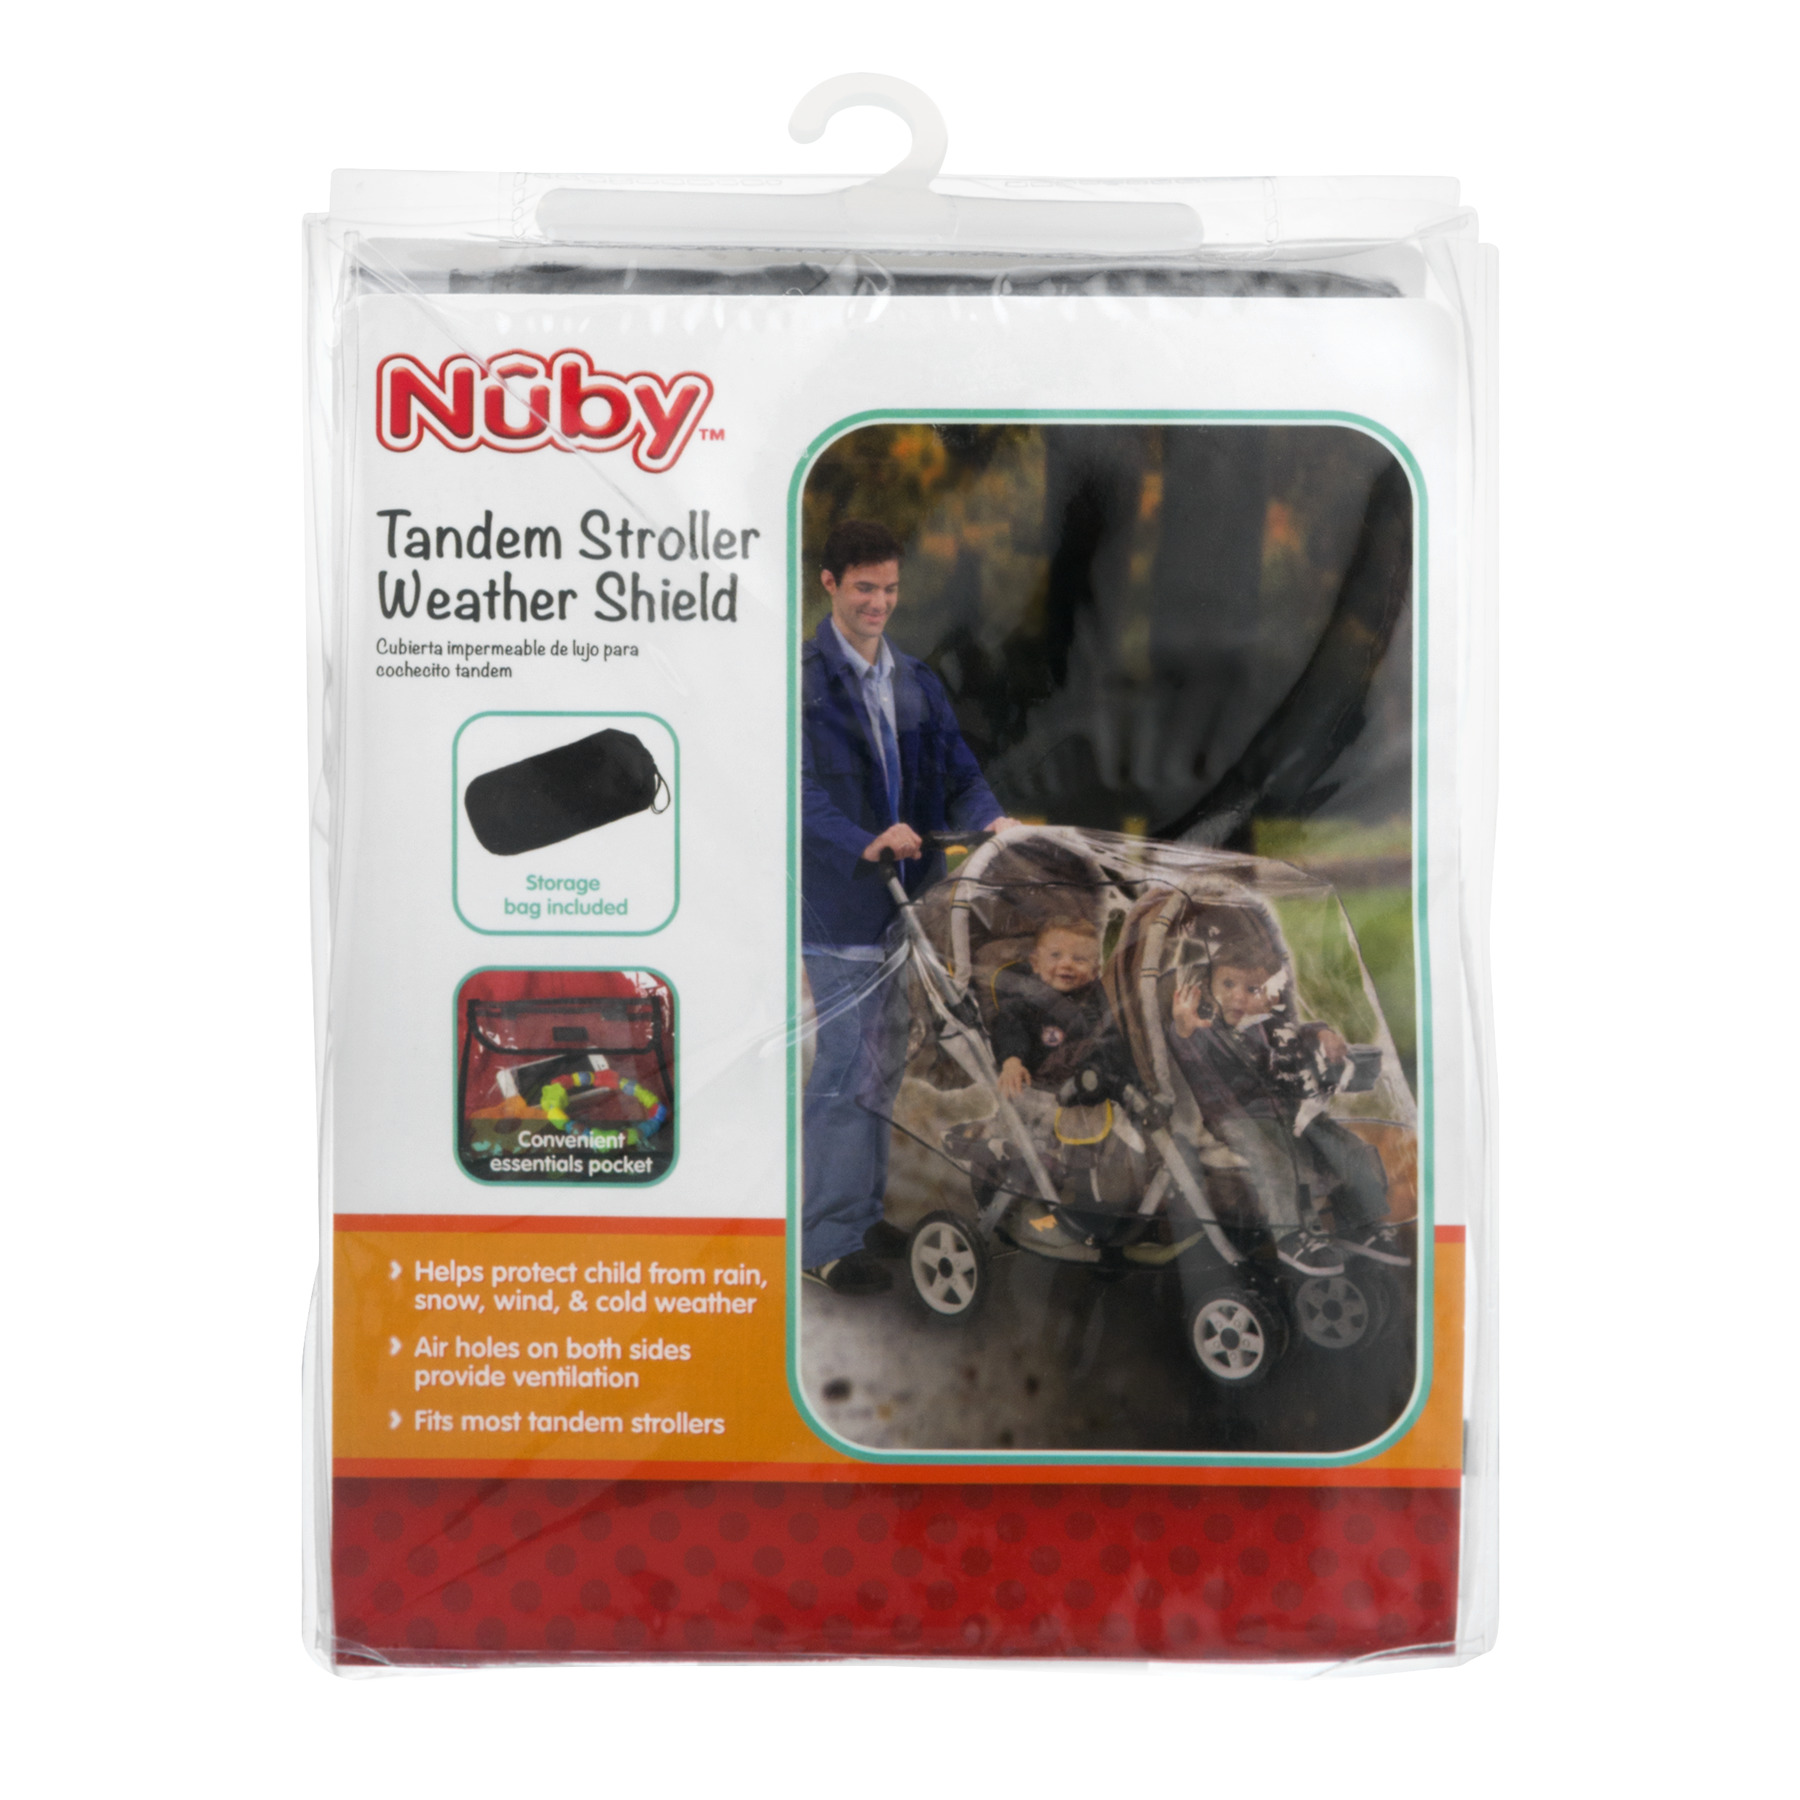 Nuby Tandem Stroller Weather Shield, 1.0 CT